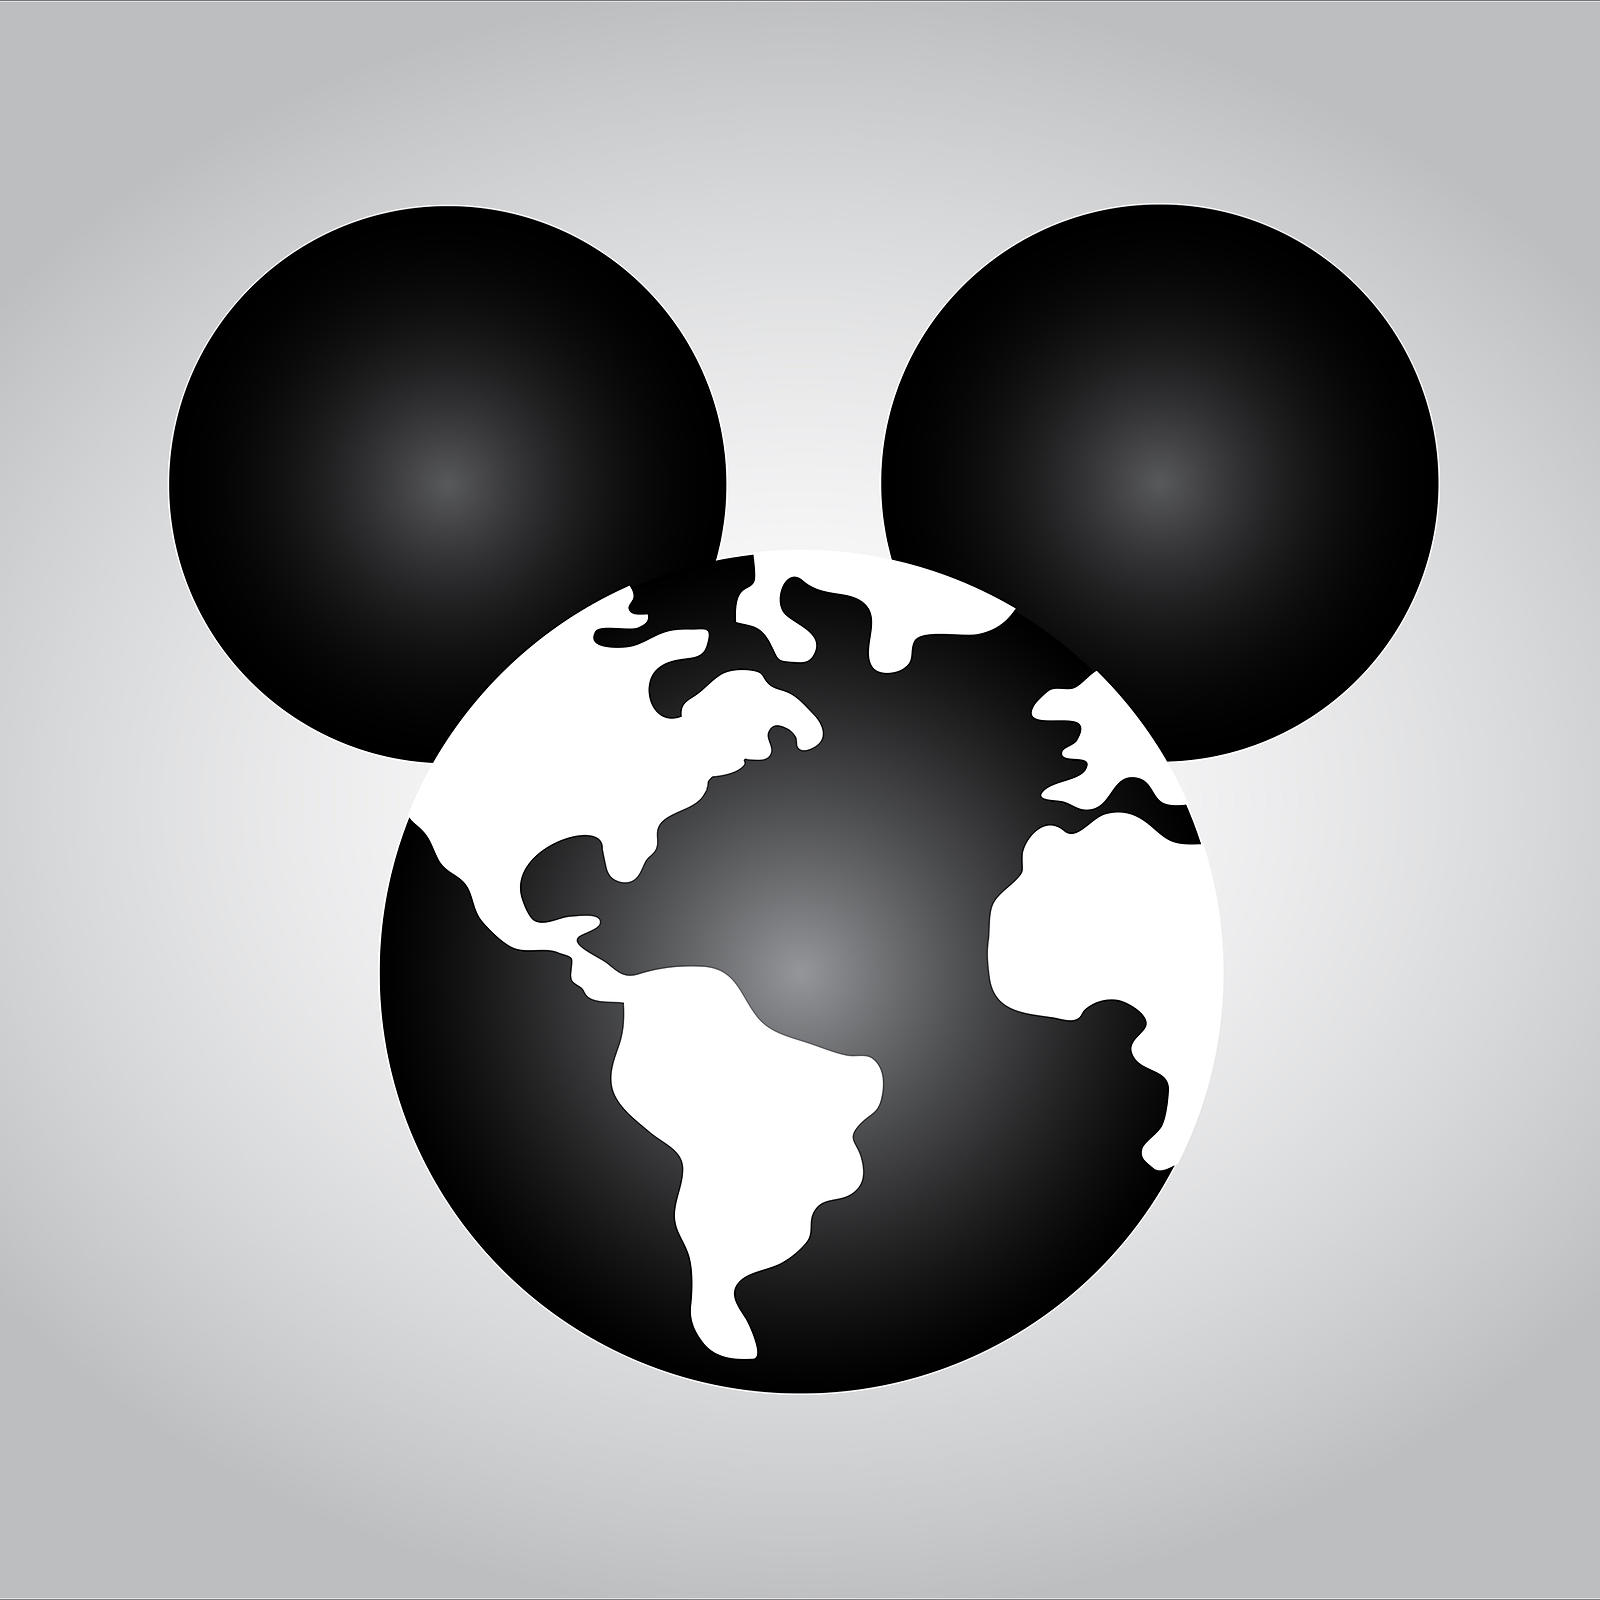 World Media Domination by Disney Following Purchase of Murdoch Fox.